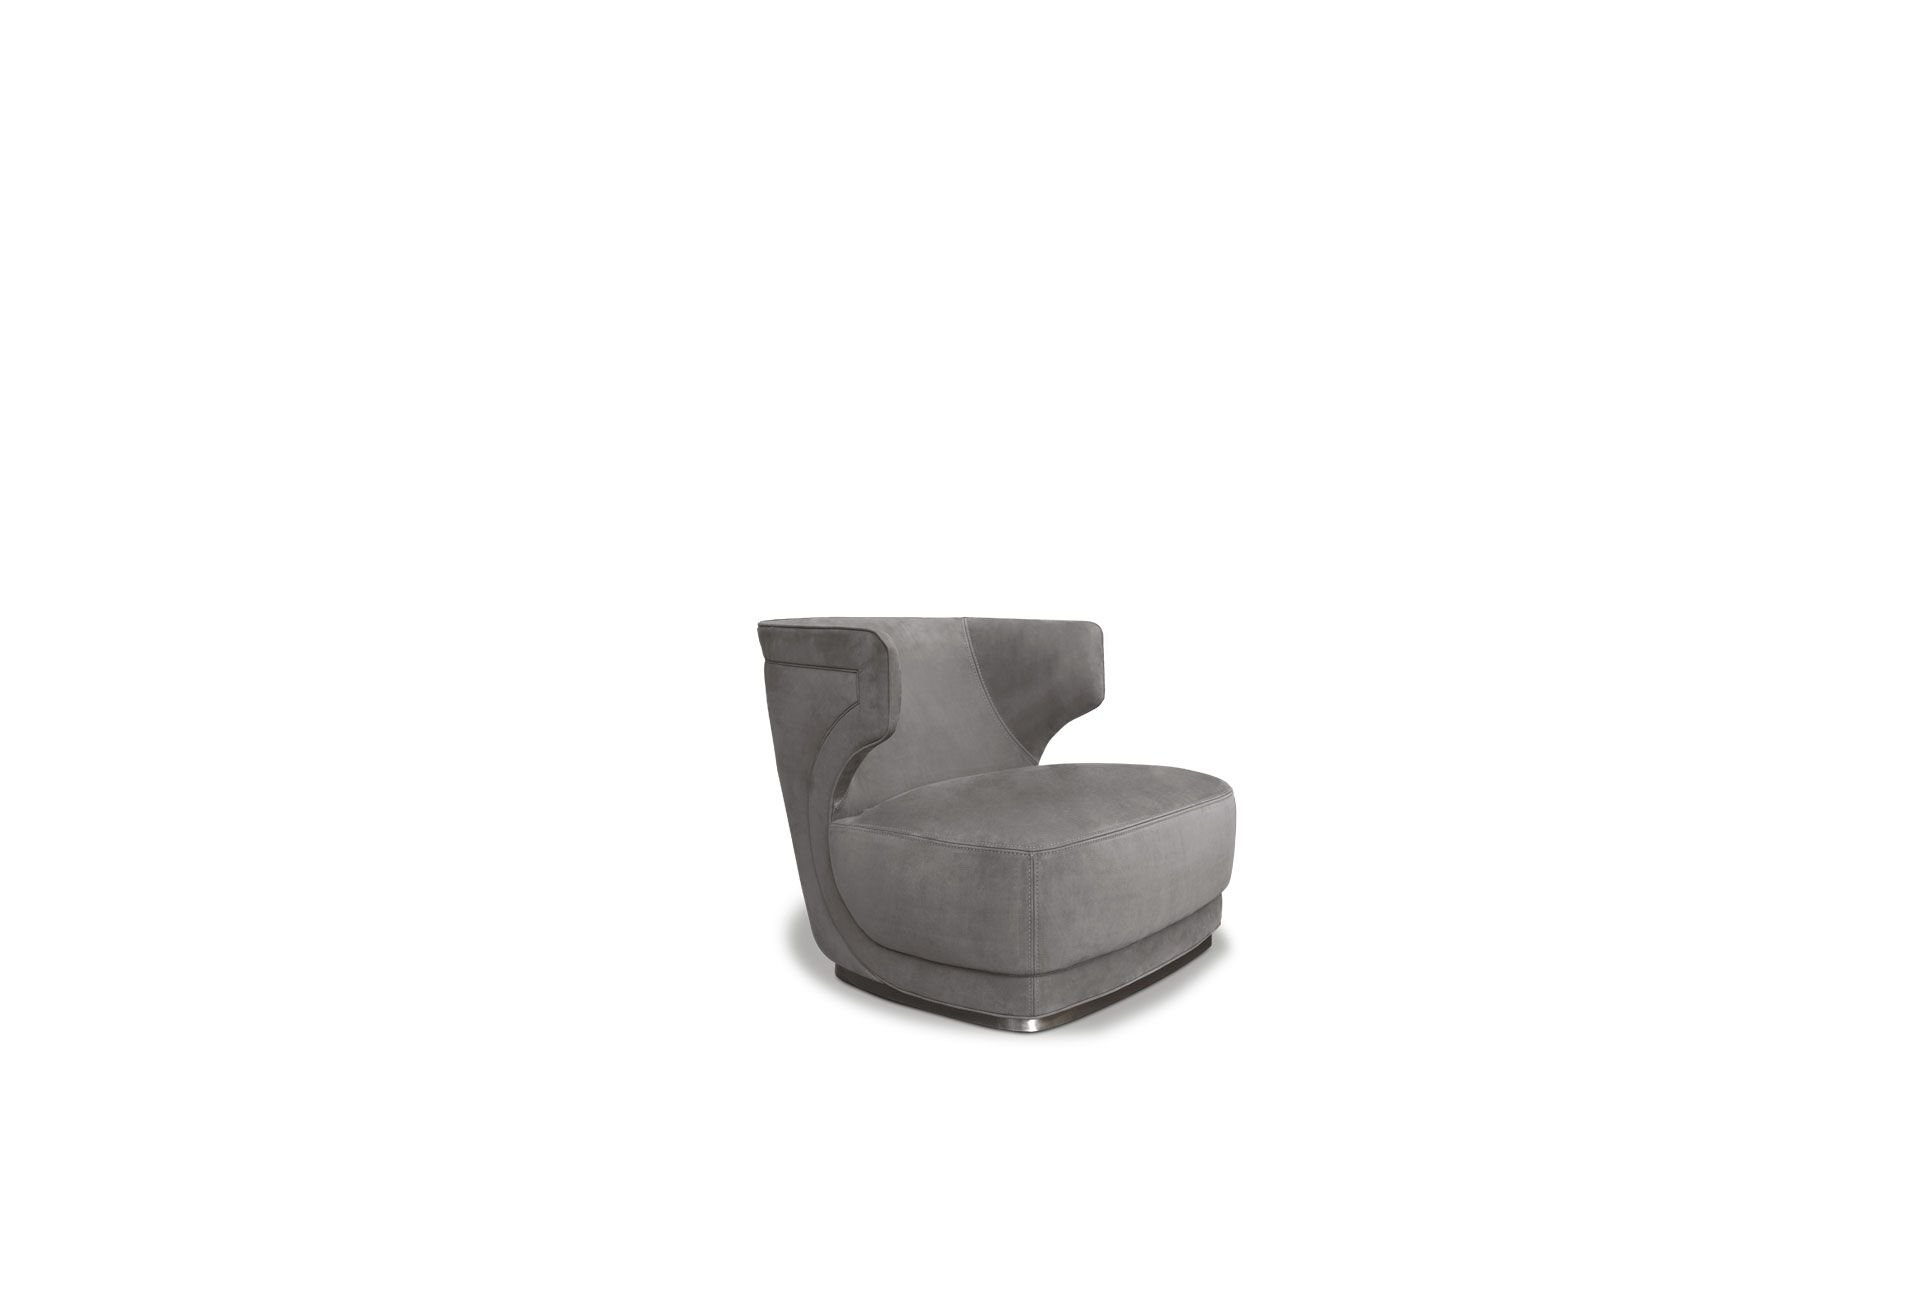 Etienne Armchair - Backrest frame in curved plywood and seat in pine and beech. Base in satin-finished brass, in hand-finished burnished metal or in satin nickeled metal, with matte varnish. Padding in differentiated density polyurethane foam. Double decorative edge.  Matte black-varnished metal revolving base is available on request at no surcharge. The armchair with two different kinds of leather or colour (structure and seat) is available on request with no surcharge; it should be remembered that the price is set by the leather in the higher category.  Each product is hand-made in Italy and upholstery can be customised upon request. For more information on leathers and materials please refer to the catalogue   Matter of Stuff